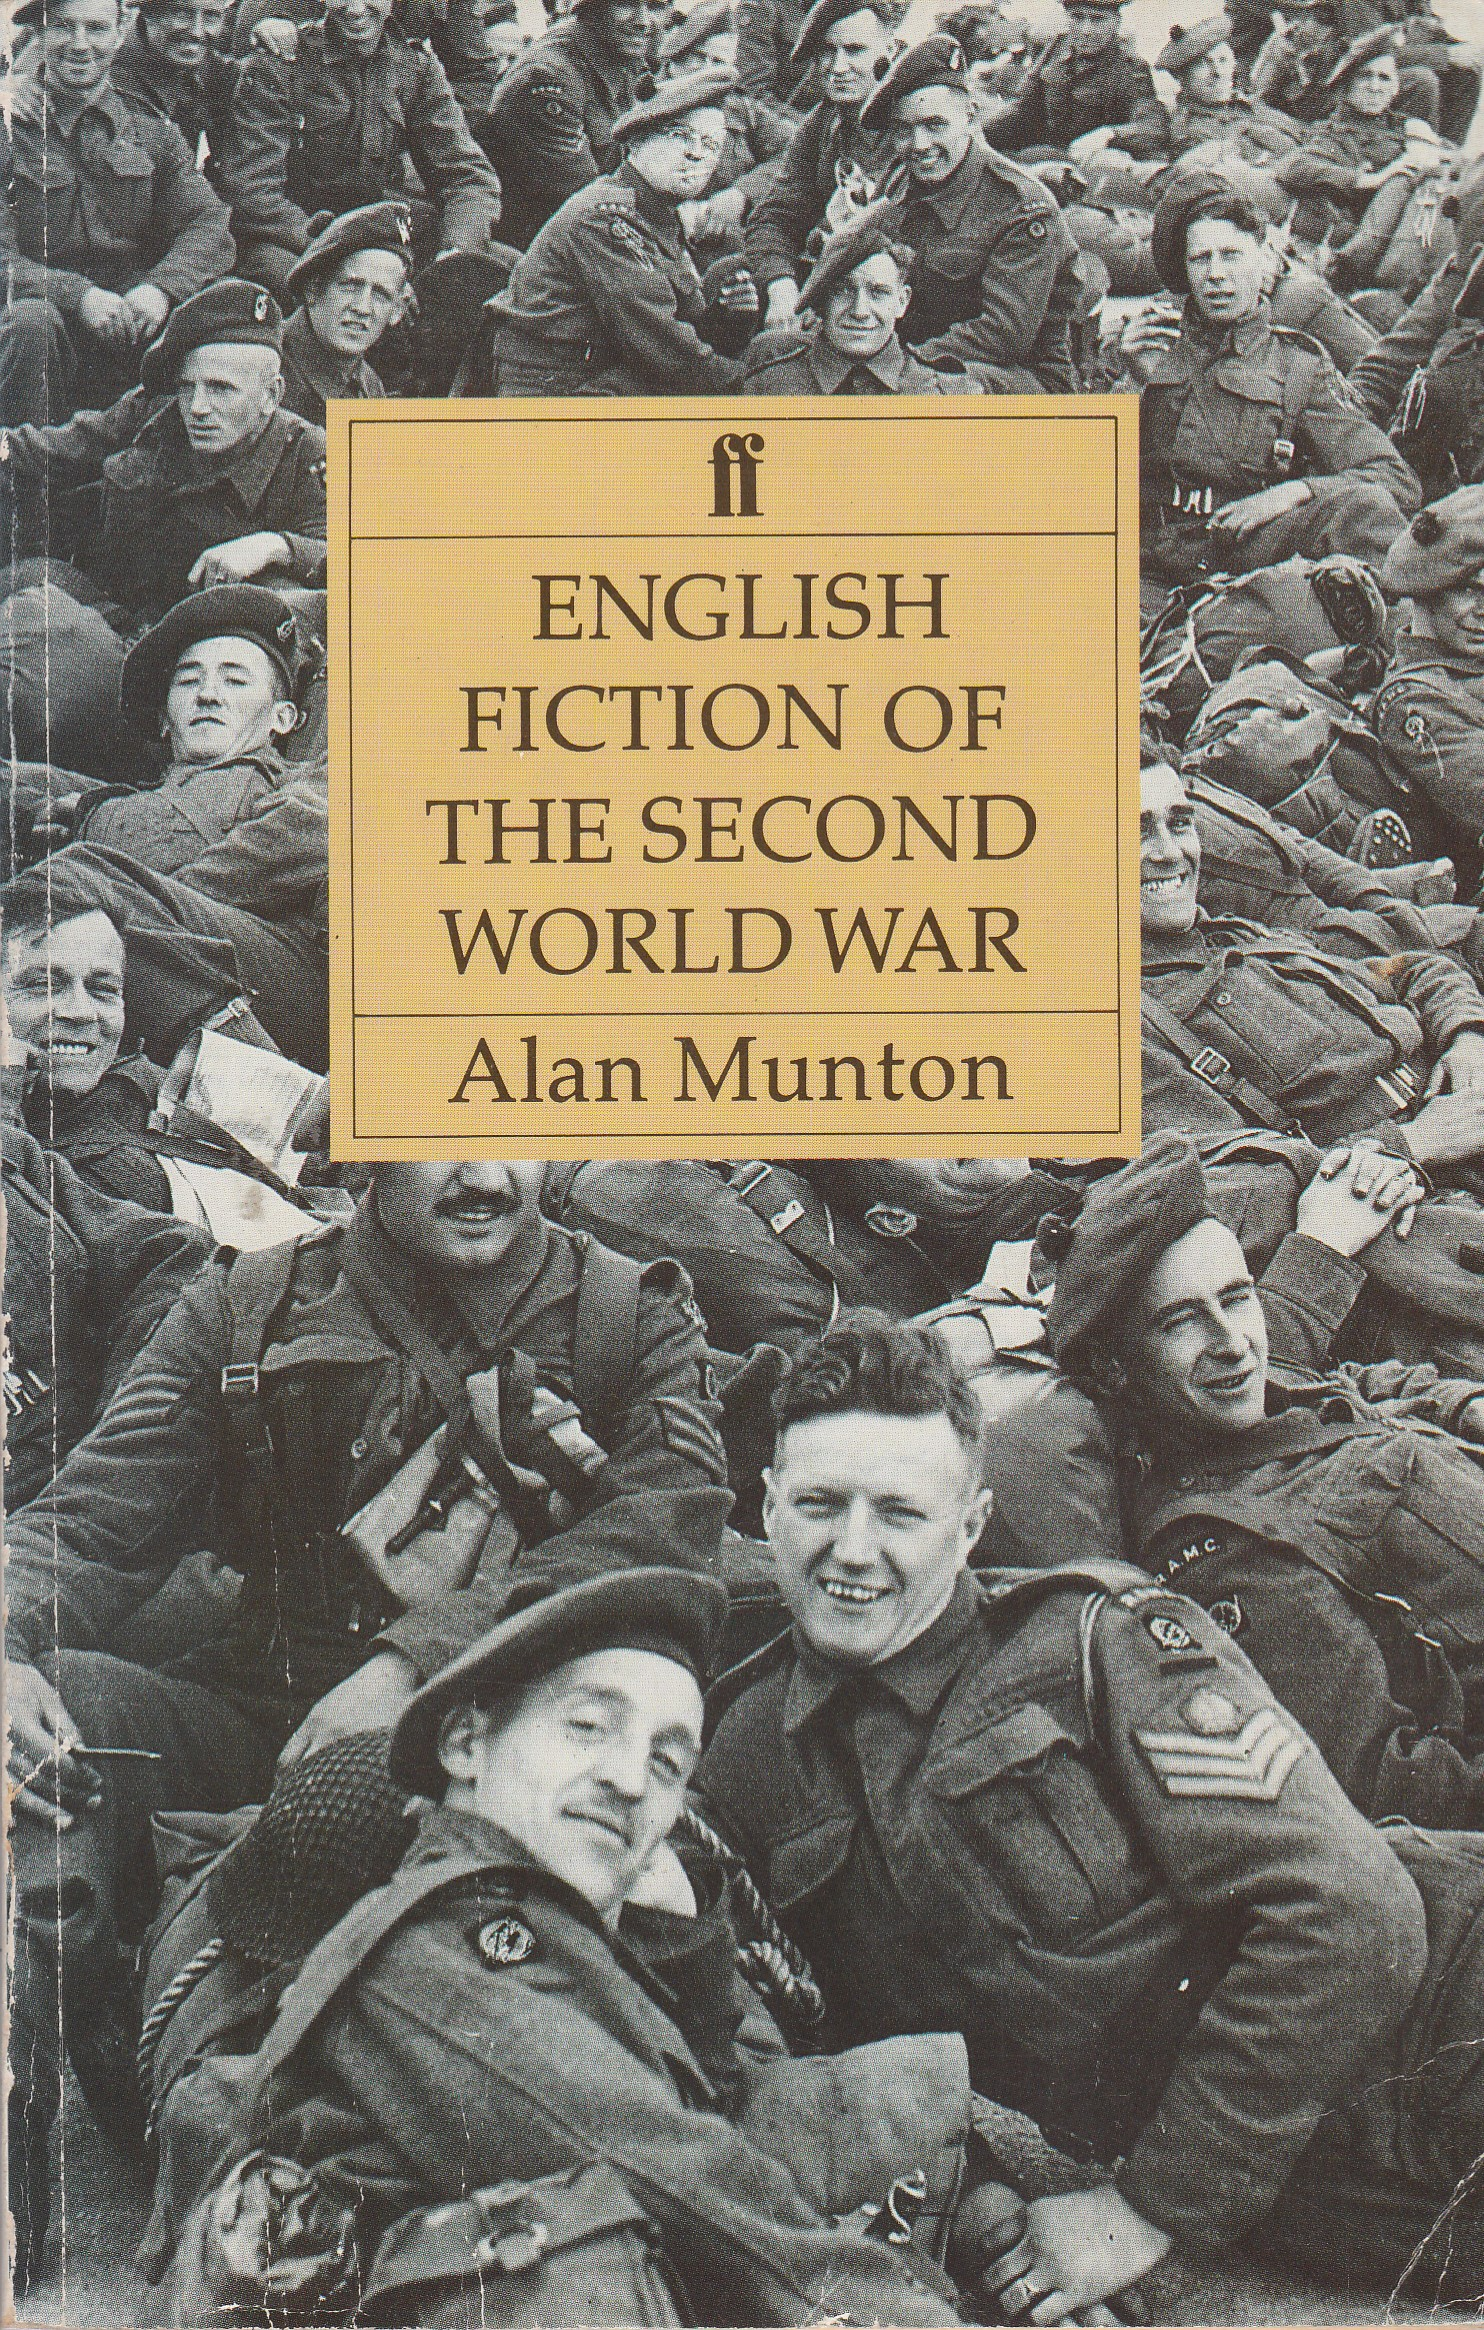 English Fiction of the Second World War